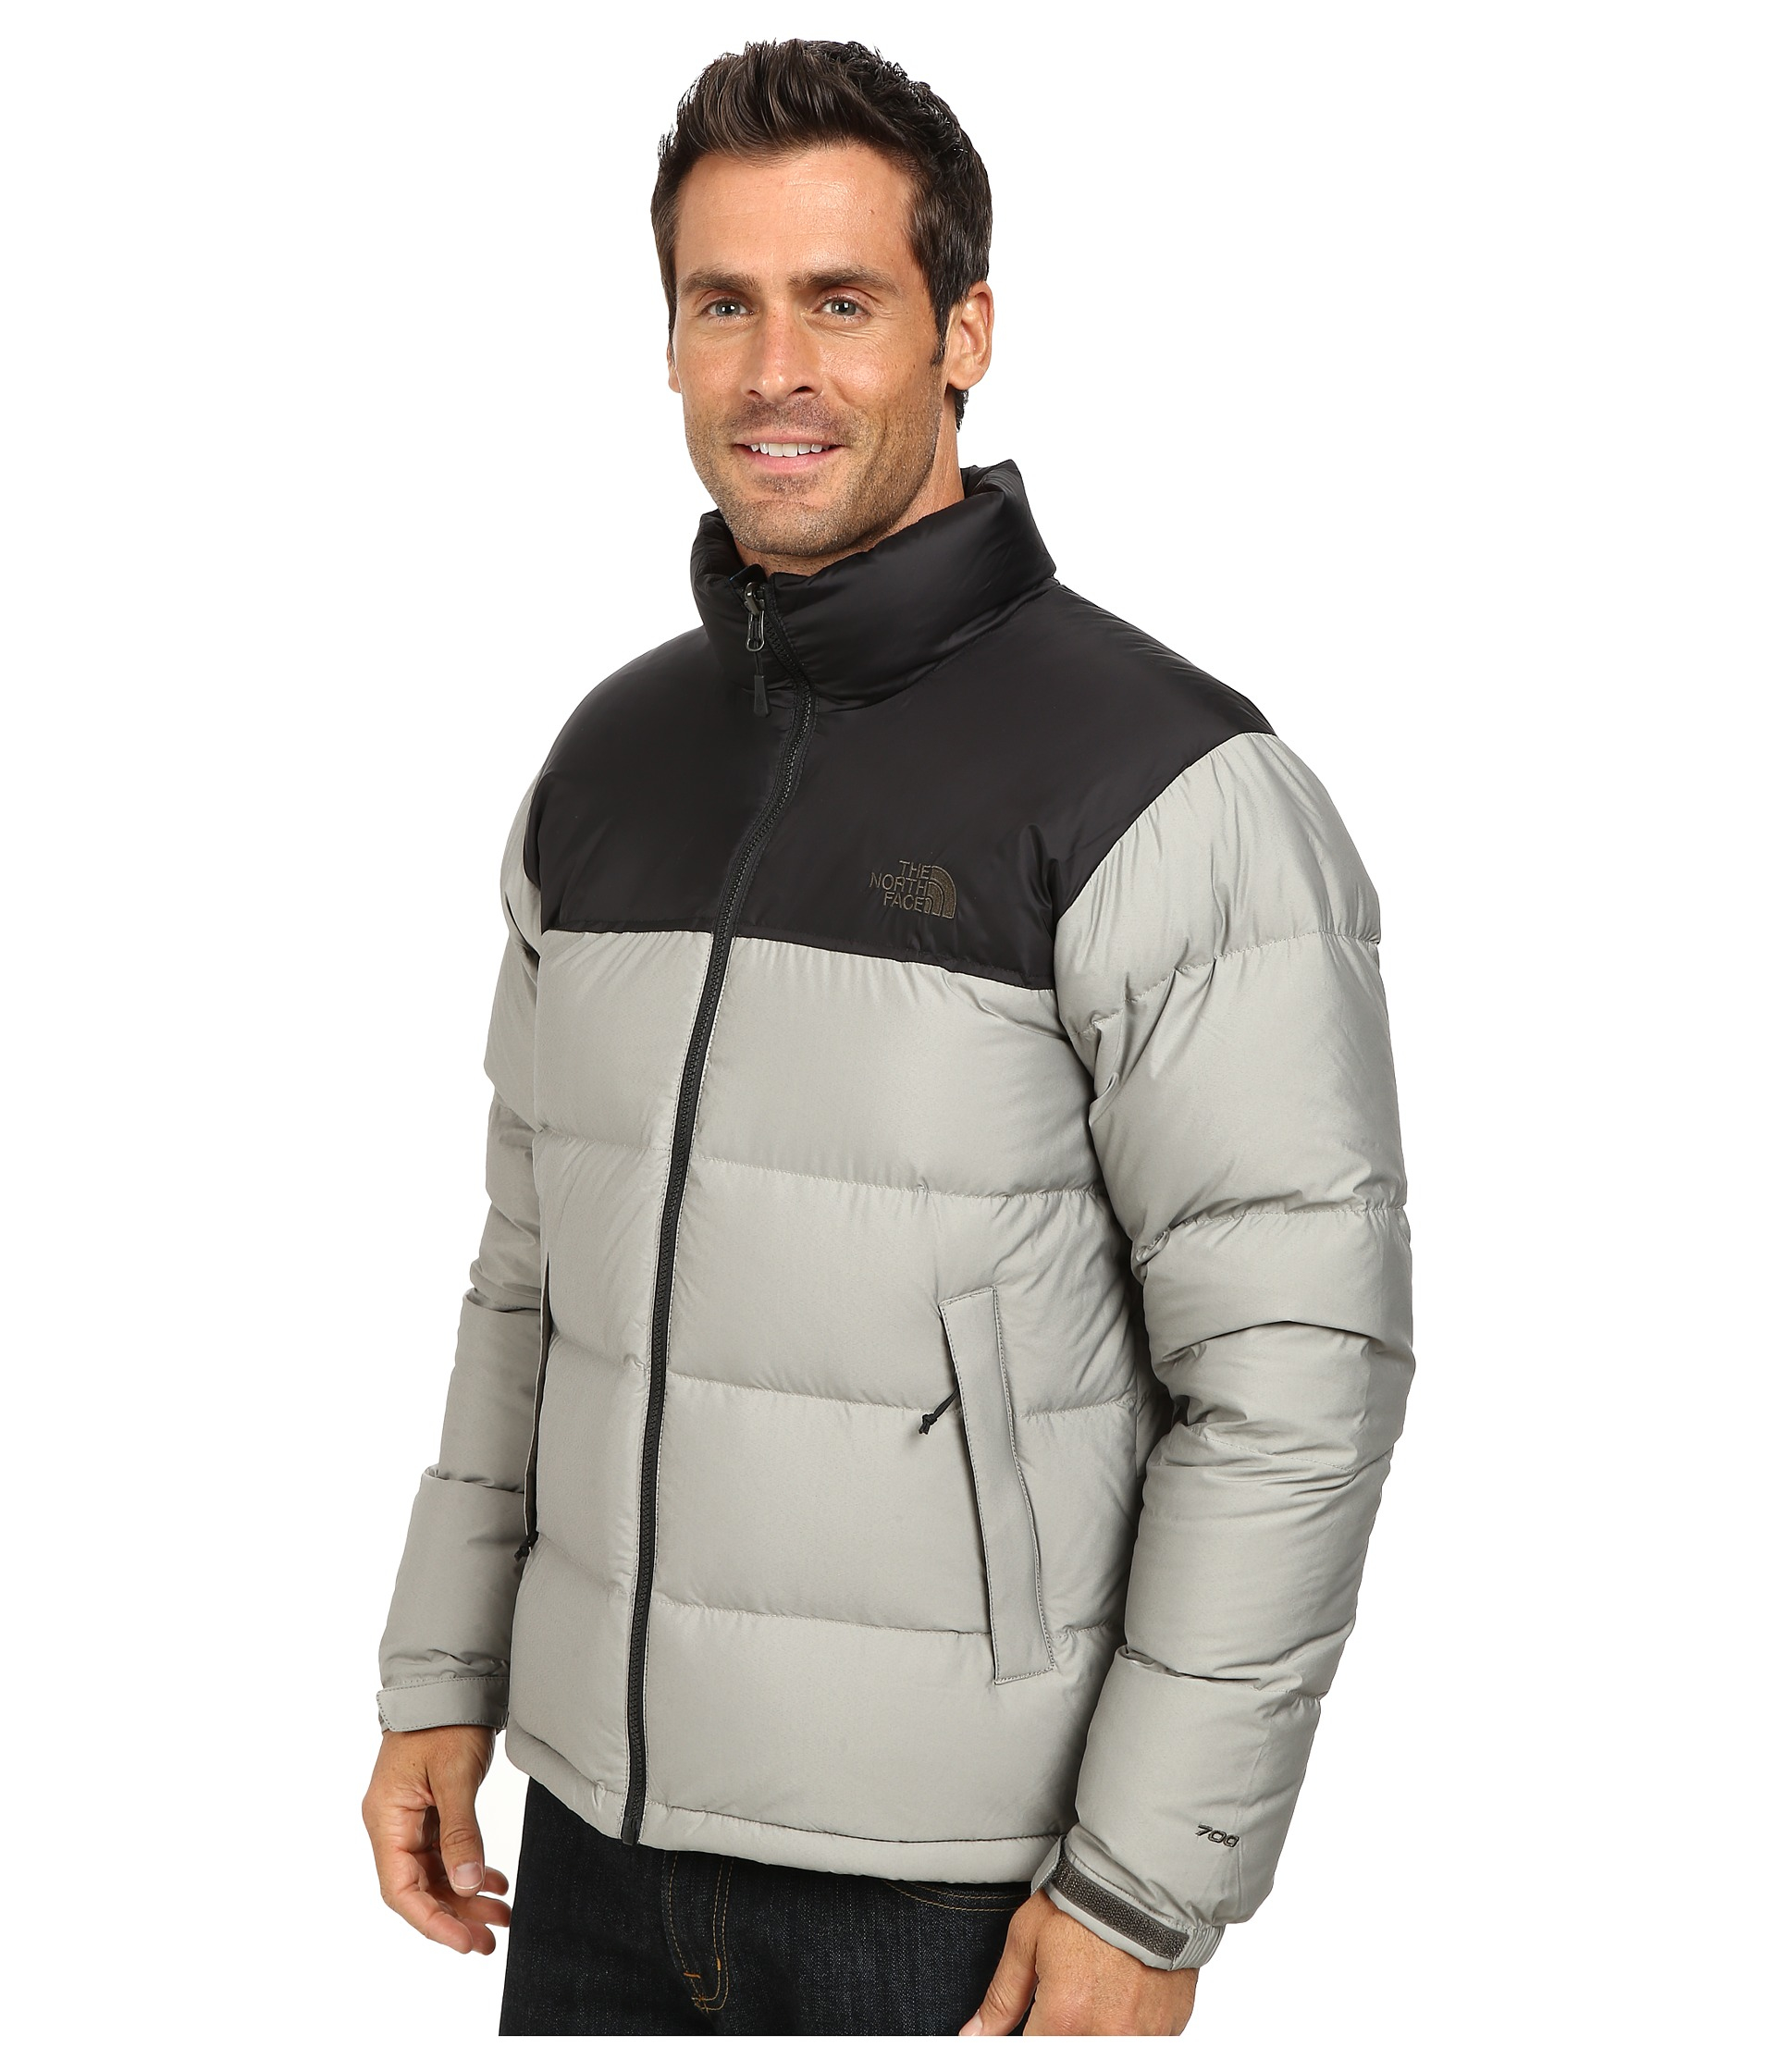 d5b1189b40 Lyst - The North Face Nuptse Jacket in Gray for Men